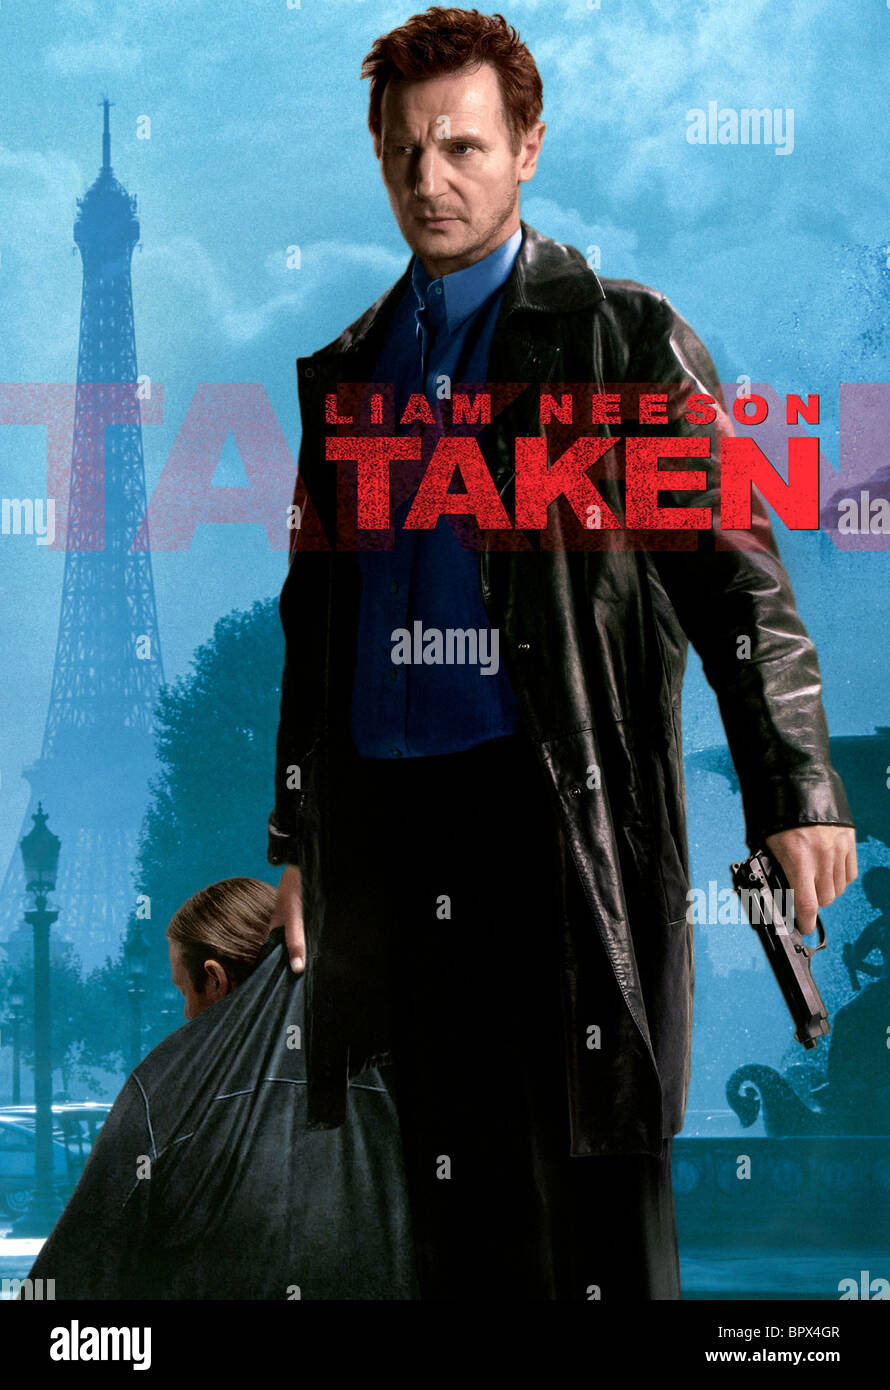 Liam Neeson Poster Taken 2008 Stock Photo Alamy